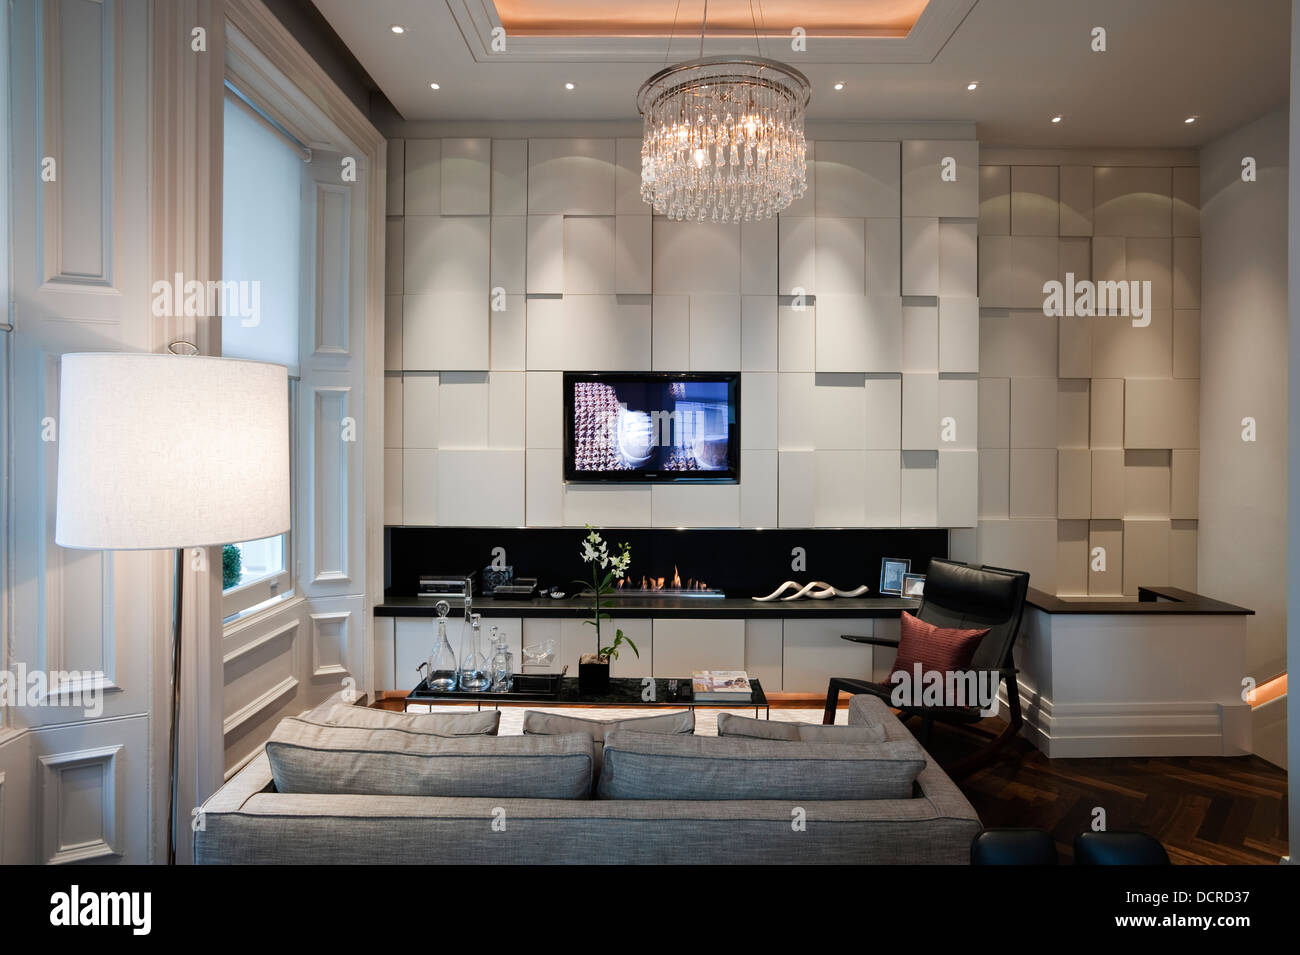 Seating area with glass chandelier and recessed fire in London city apartment - Stock Image